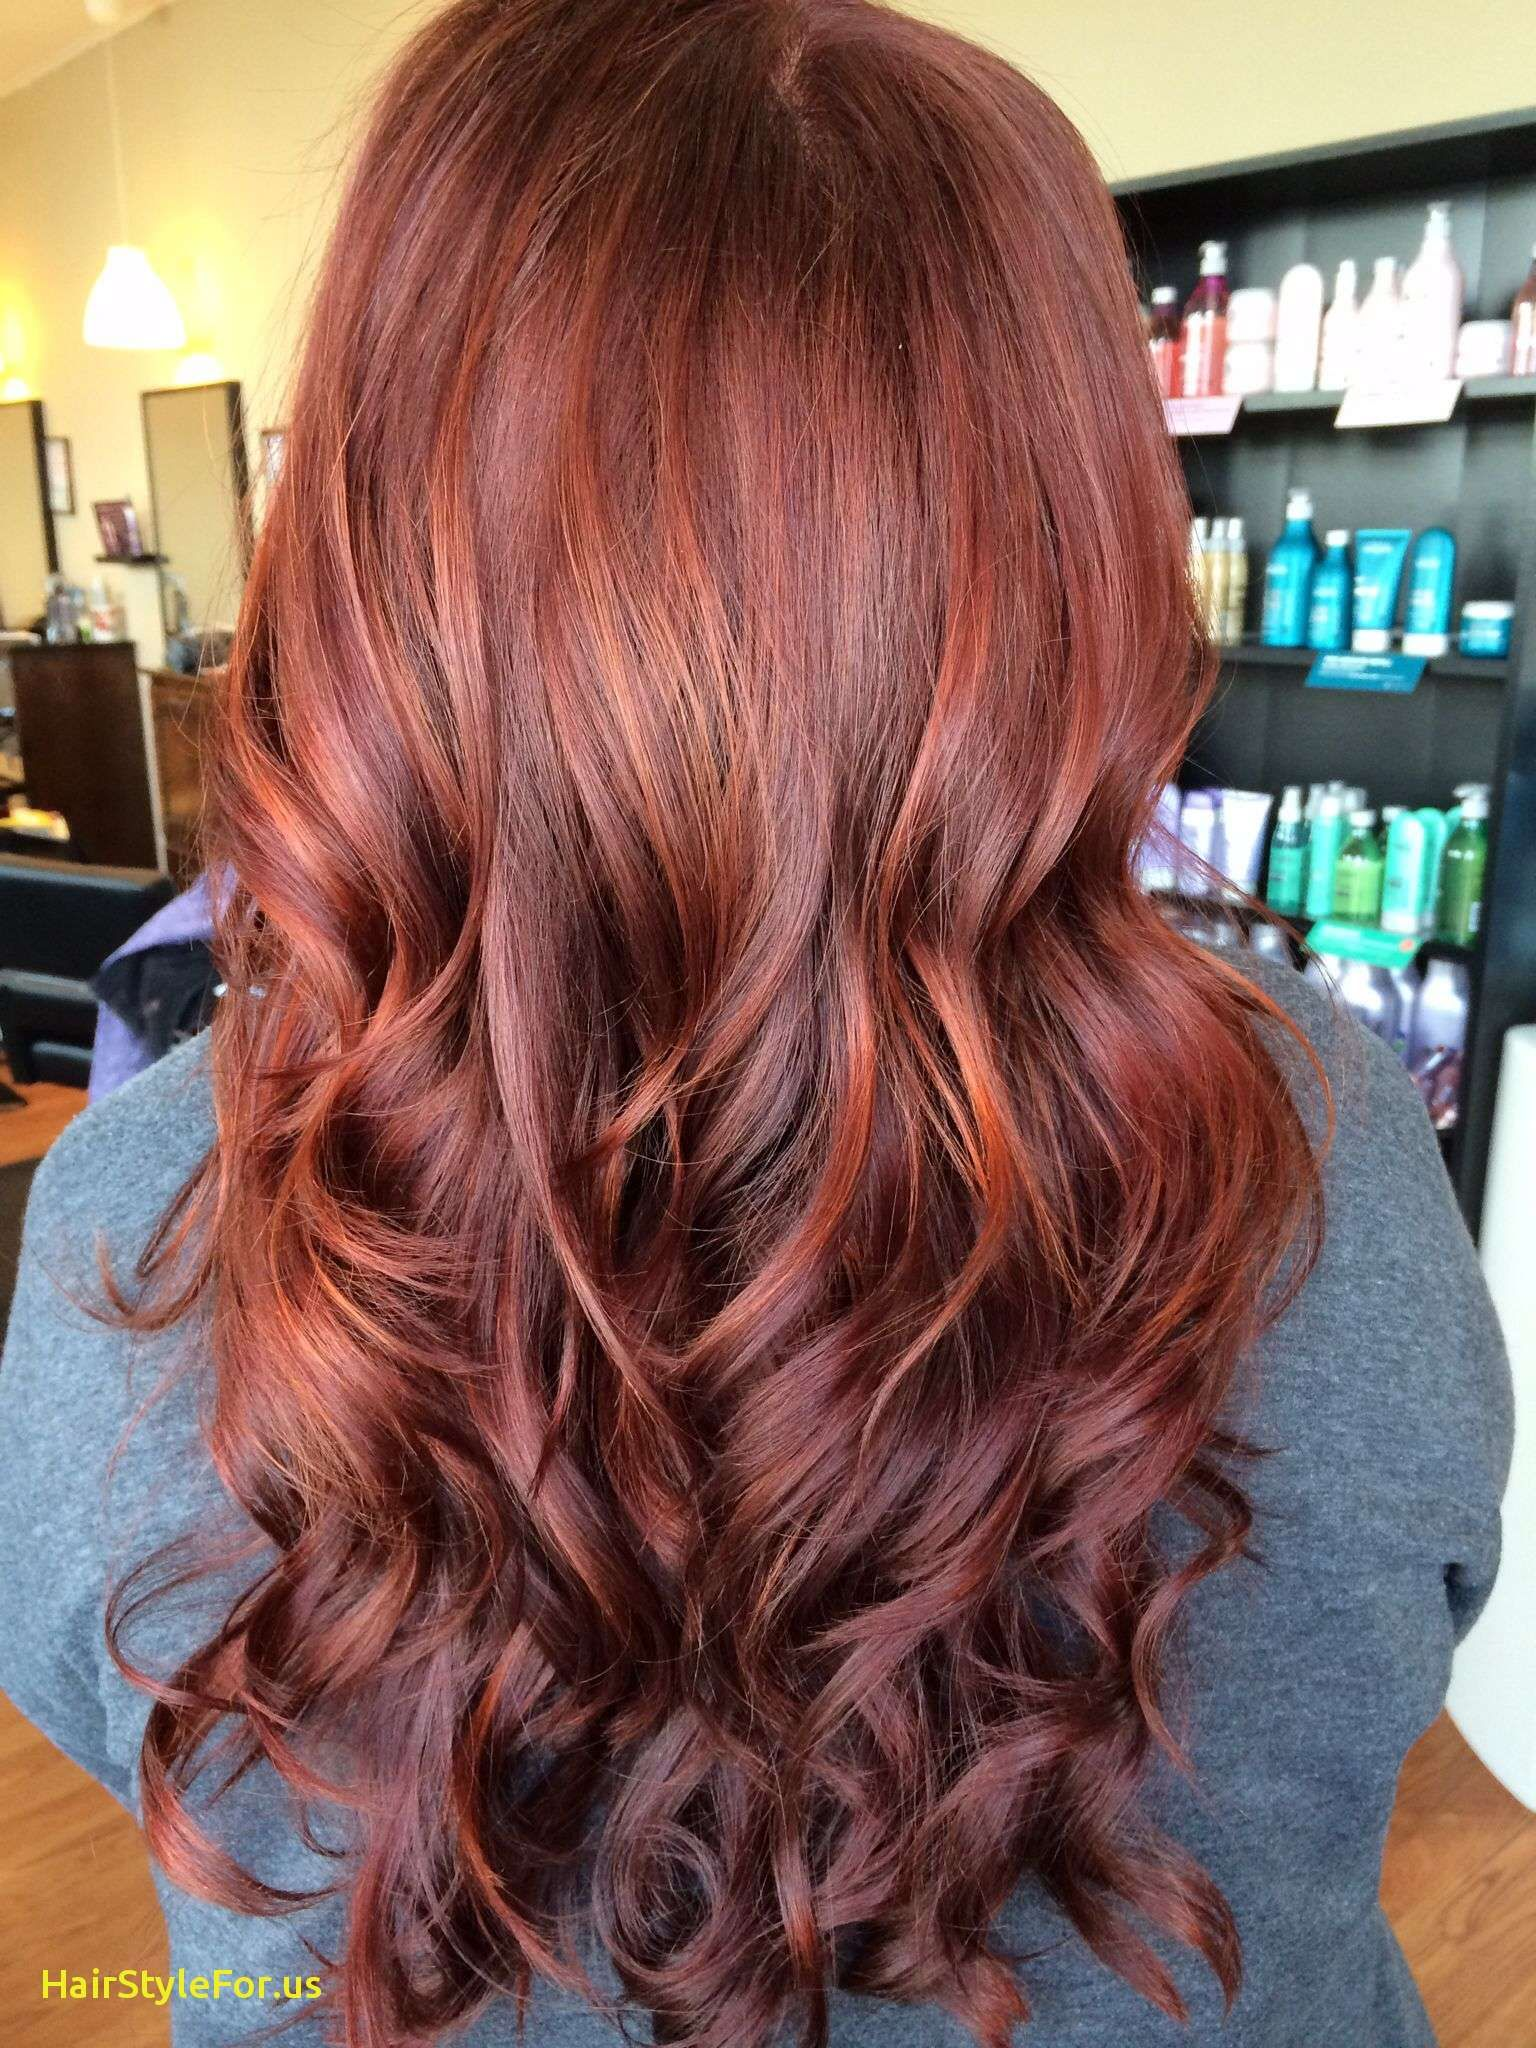 Luxury Best Hair Color Remover For Red Hair Pinterest Hair Color